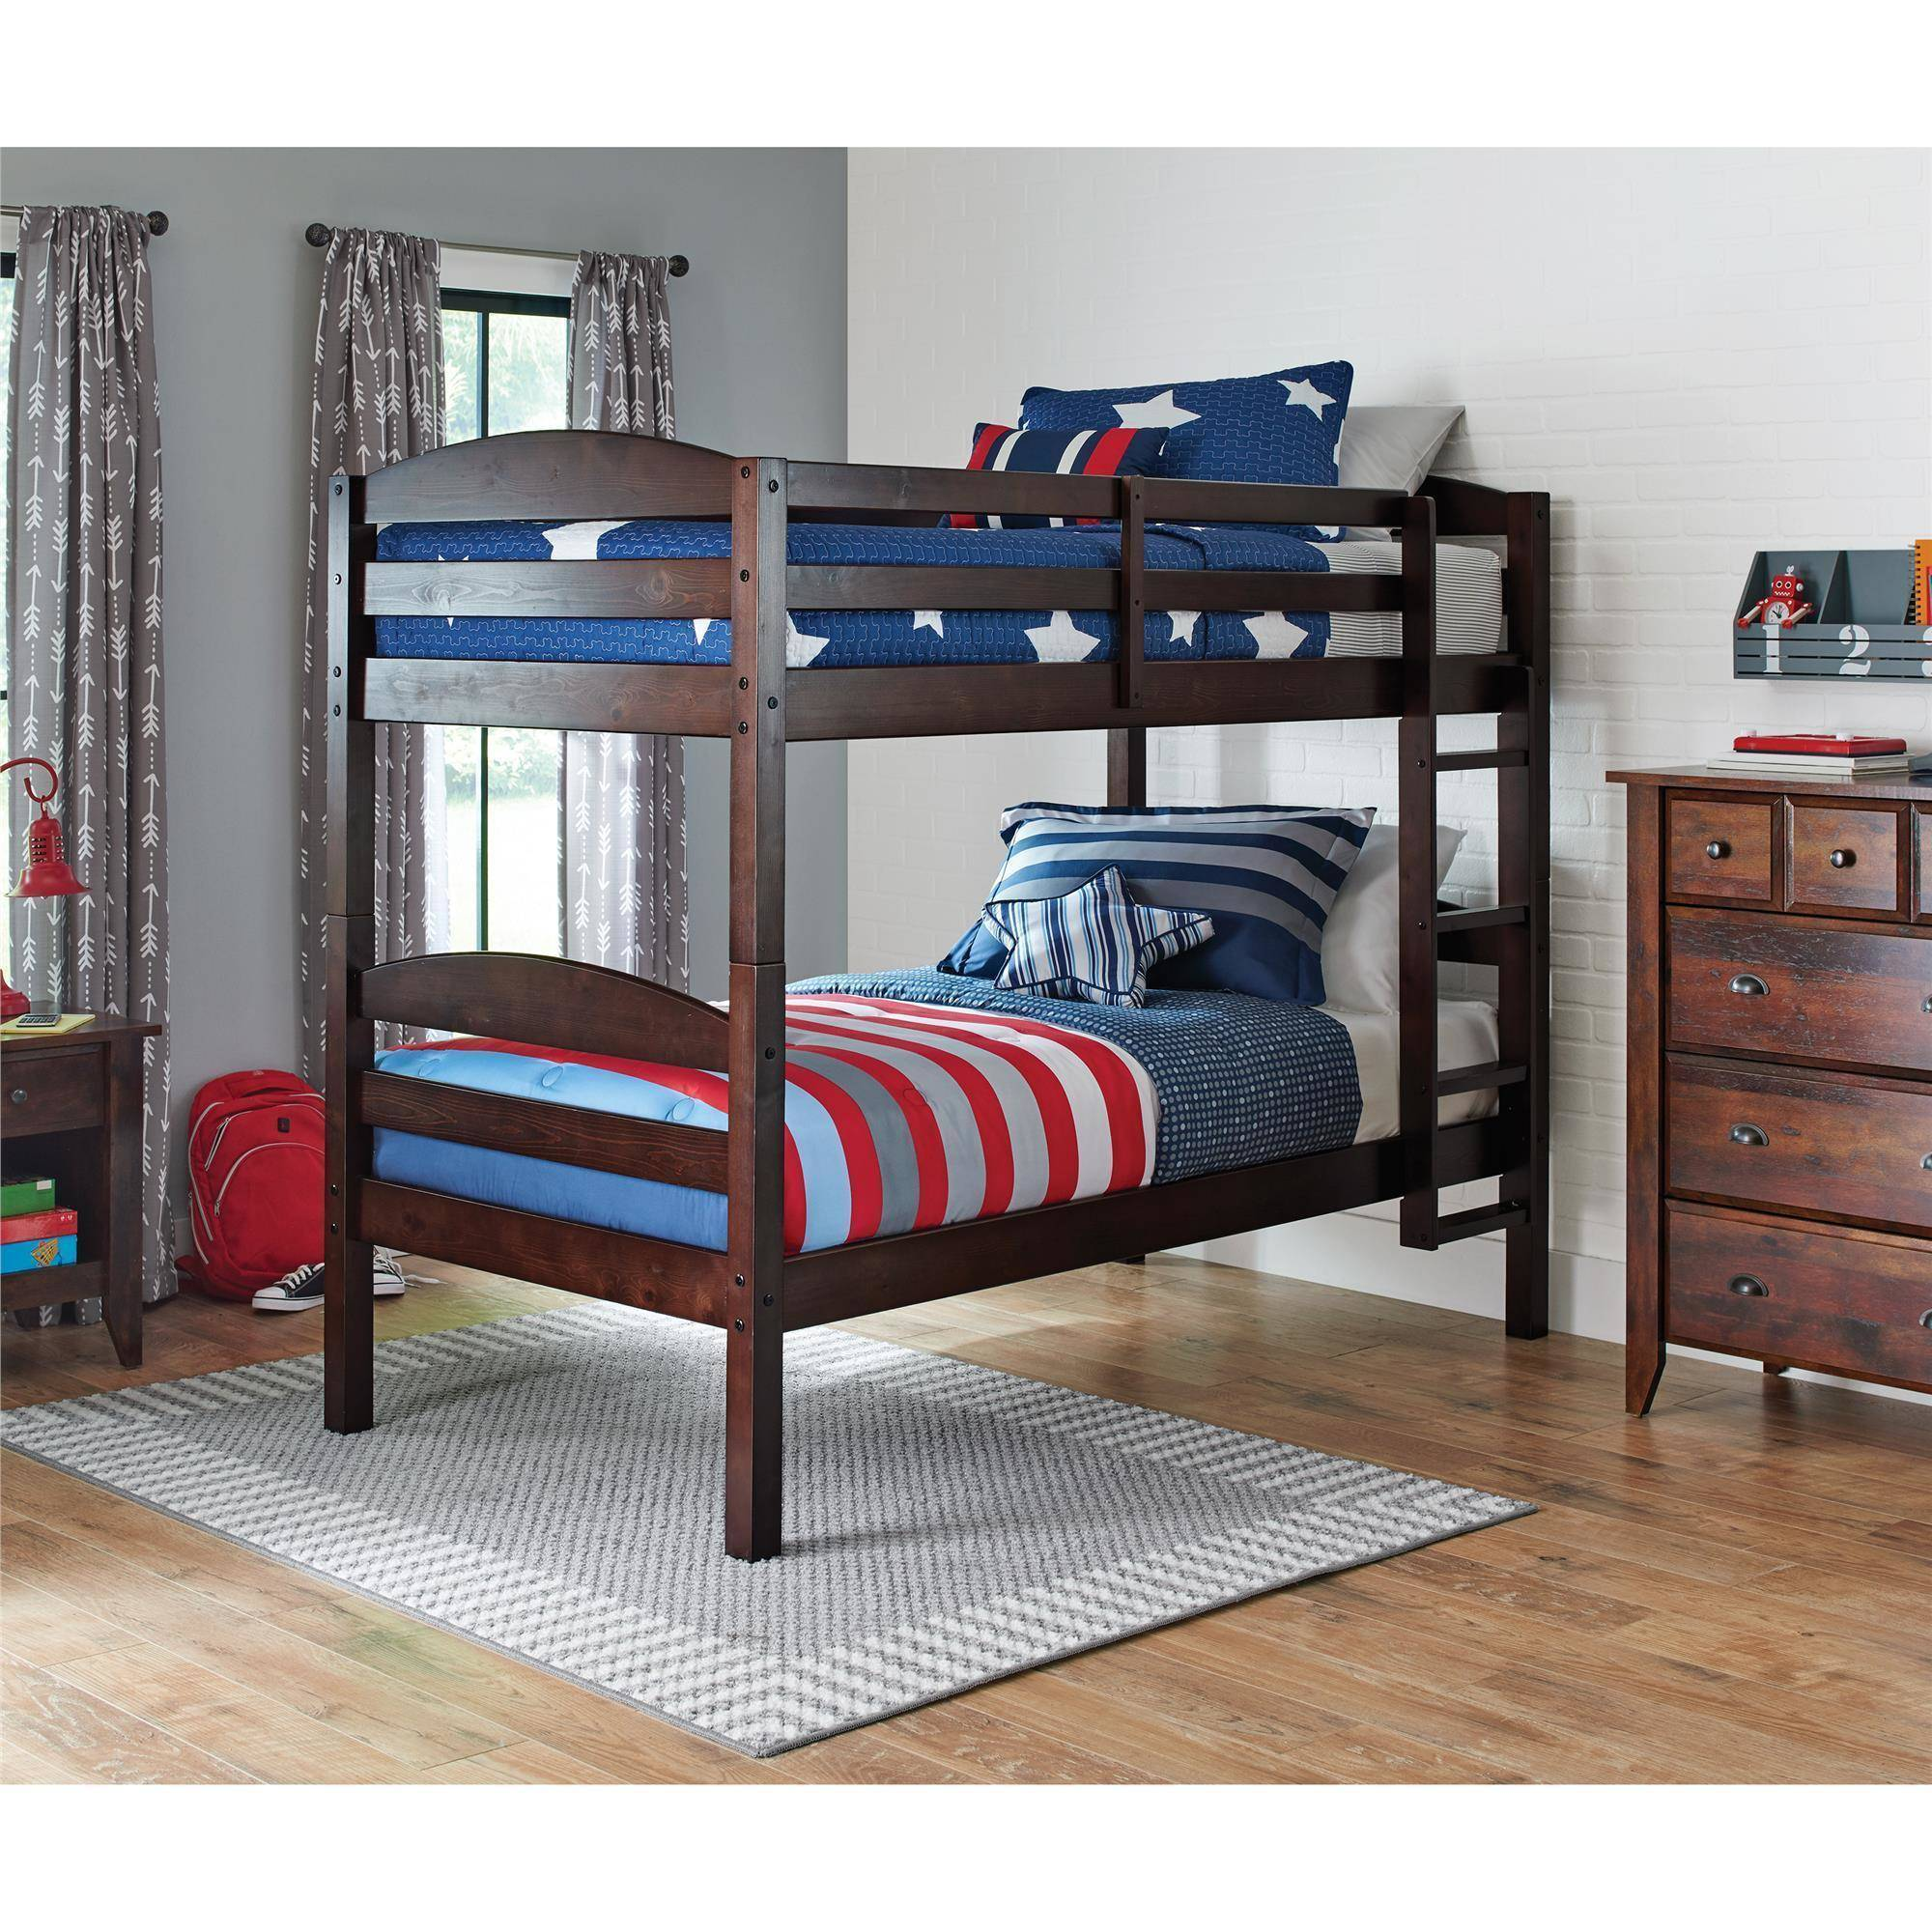 Better Homes And Gardens Leighton Bunk Bed Mattress Bundle